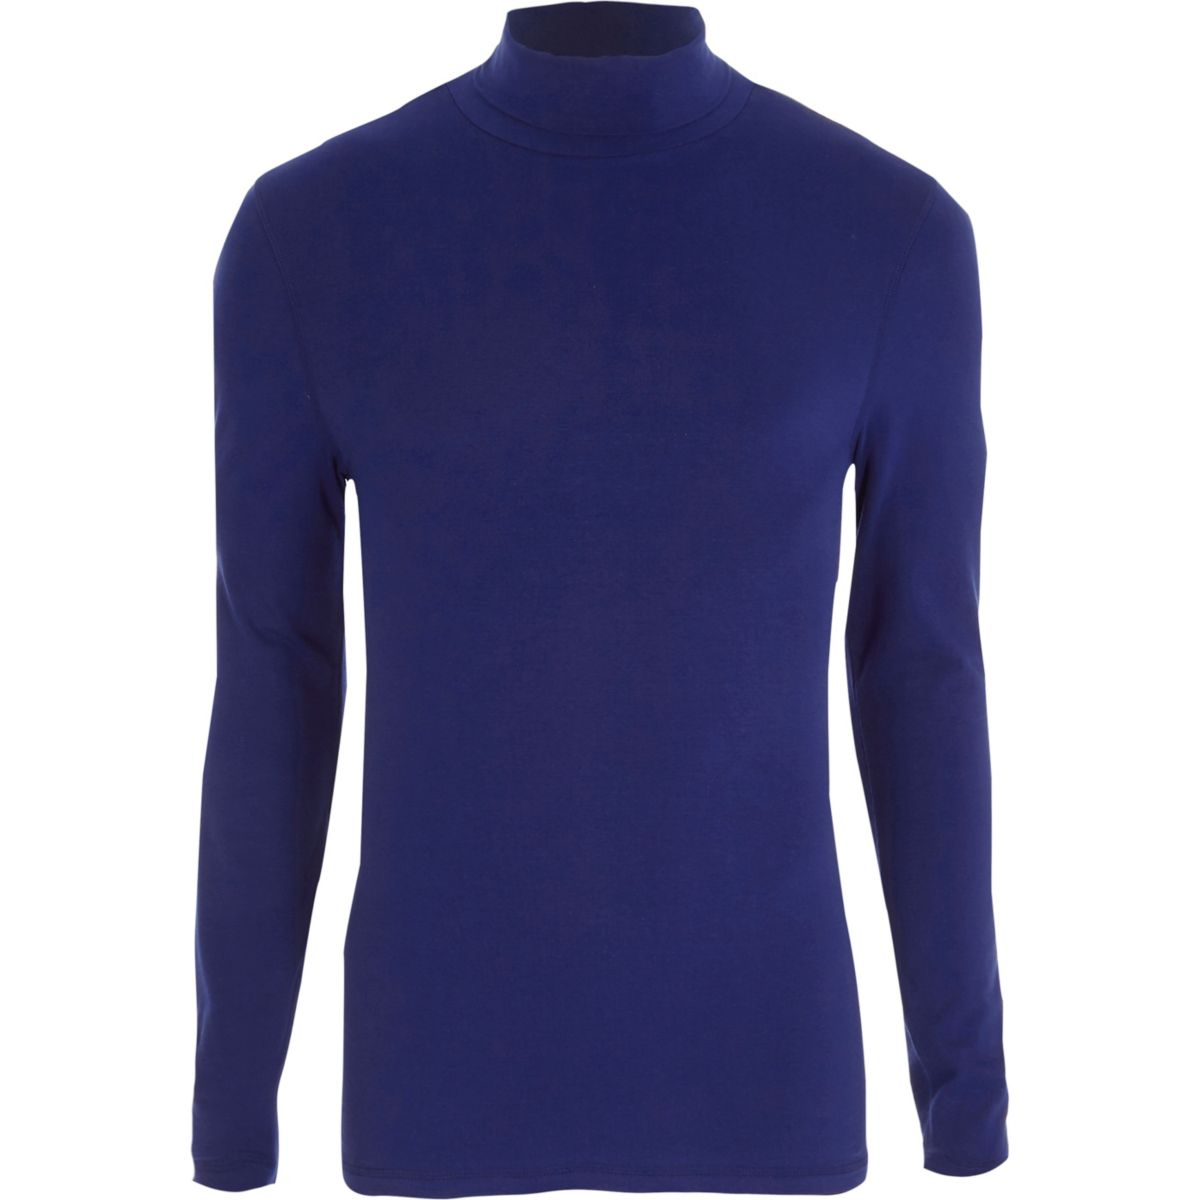 Blue long sleeve roll neck muscle fit T-shirt